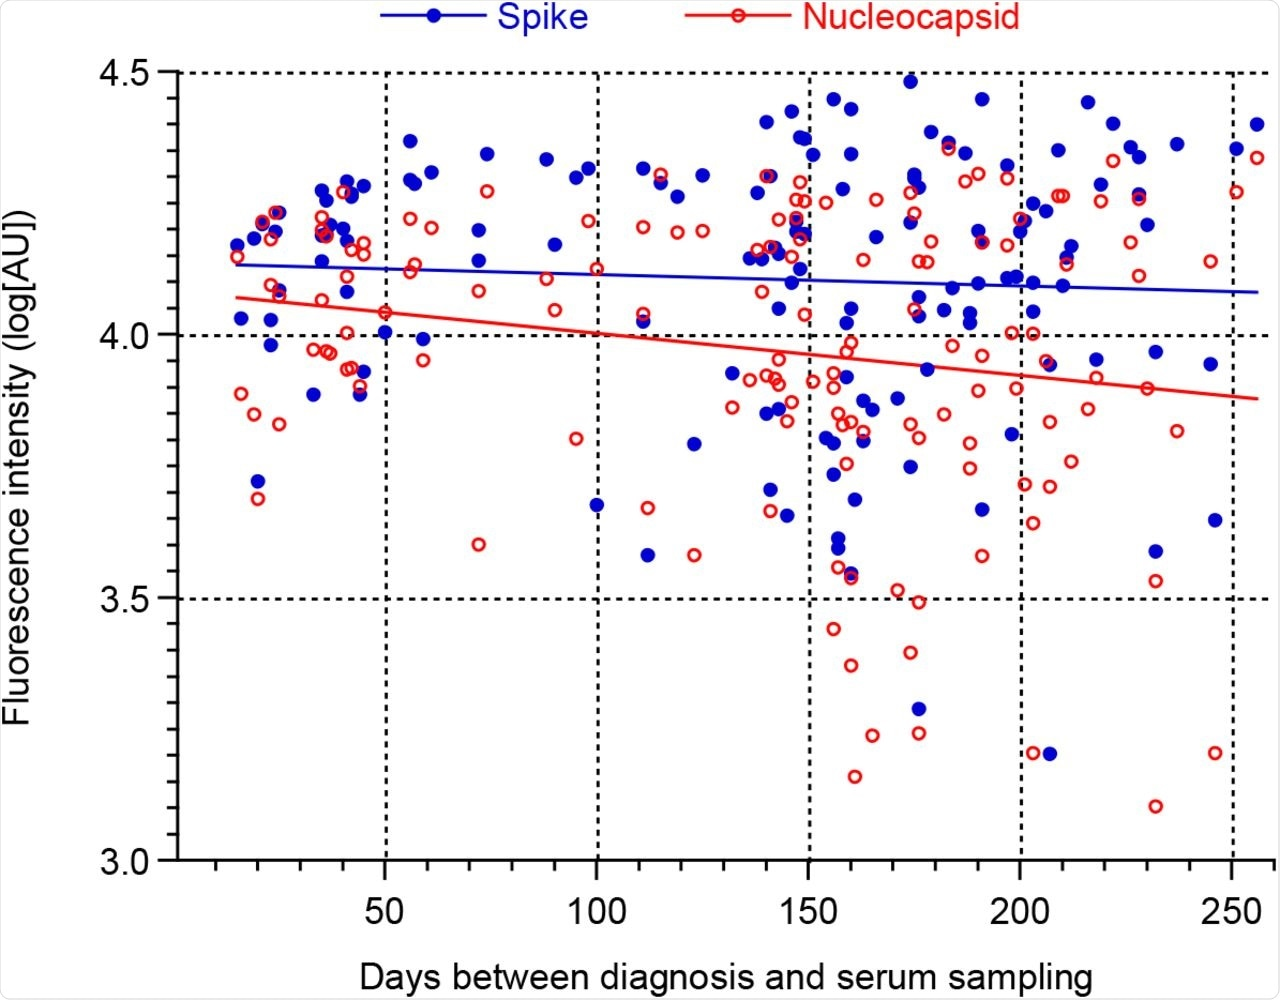 Correlation of antibody levels among patient-cases and time between disease notification and serum sampling (n = 141, 4 outliers removed).